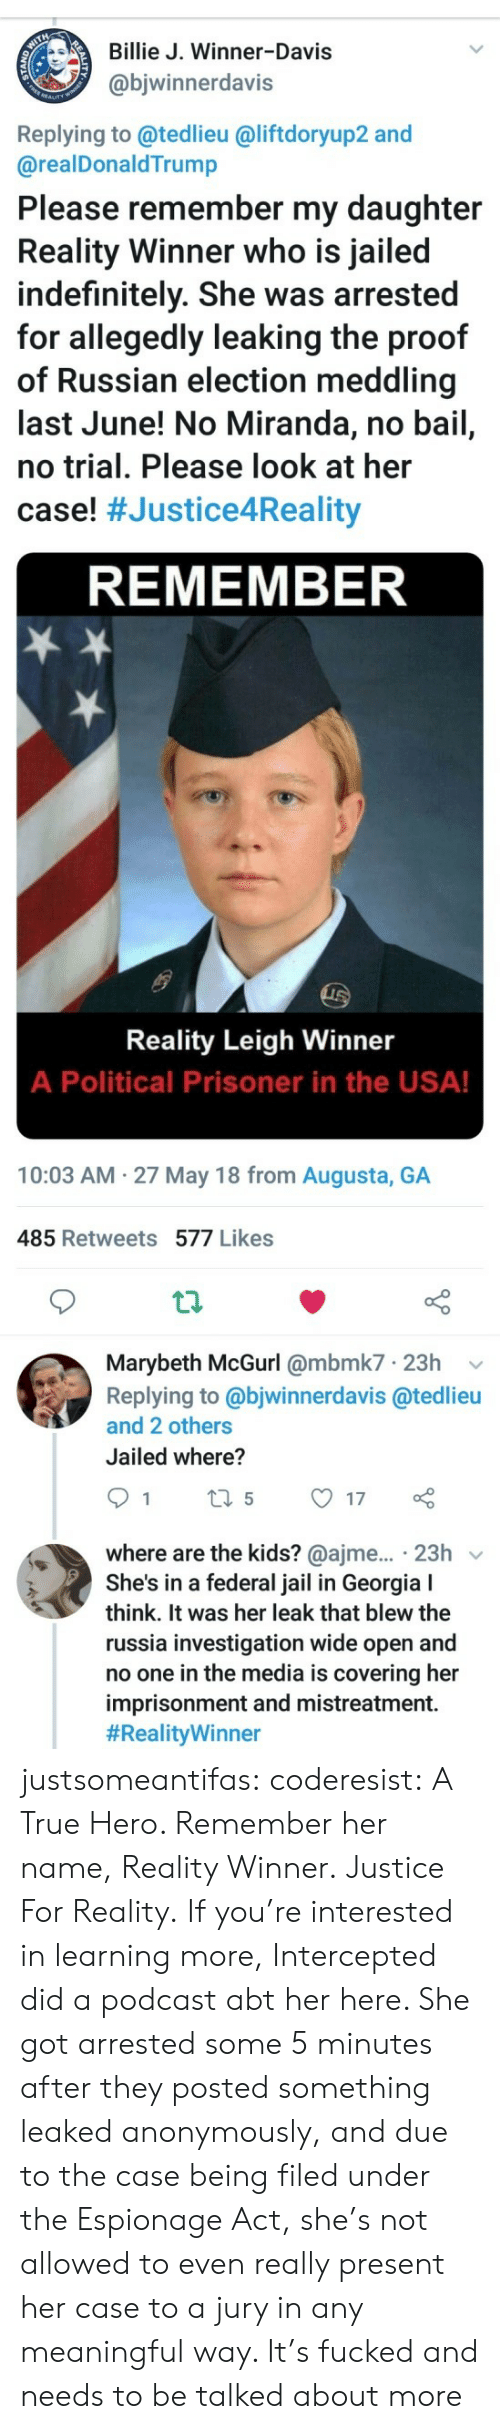 Intercepted: Billie J. Winner-Davis  @bjwinnerdavis  Replying to @tedlieu @liftdoryup2 and  @realDonaldTrump  Please remember my daughter  Reality Winner who is jailed  indefinitely. She was arrested  for allegedly leaking the proof  of Russian election meddling  last June! No Miranda, no bail,  no trial. Please look at her  case! #Justice4Reality  REMEMBER  Reality Leigh Winner  A Political Prisoner in the USA!  10:03 AM 27 May 18 from Augusta, GA  485 Retweets 577 Likes  th  Marybeth McGurl @mbmk7 23h v  Replying to @bjwinnerdavis @tedlieu  and 2 others  Jailed where?  where are the kids? @ajme... 23h v  She's in a federal jail in Georgia I  think. It was her leak that blew the  russia investigation wide open and  no one in the media is covering her  imprisonment and mistreatment.  justsomeantifas:  coderesist: A True Hero. Remember her name, Reality Winner. Justice For Reality.   If you're interested in learning more, Intercepted did a podcast abt her here. She got arrested some 5 minutes after they posted something leaked anonymously, and due to the case being filed under the Espionage Act, she's not allowed to even really present her case to a jury in any meaningful way. It's fucked and needs to be talked about more